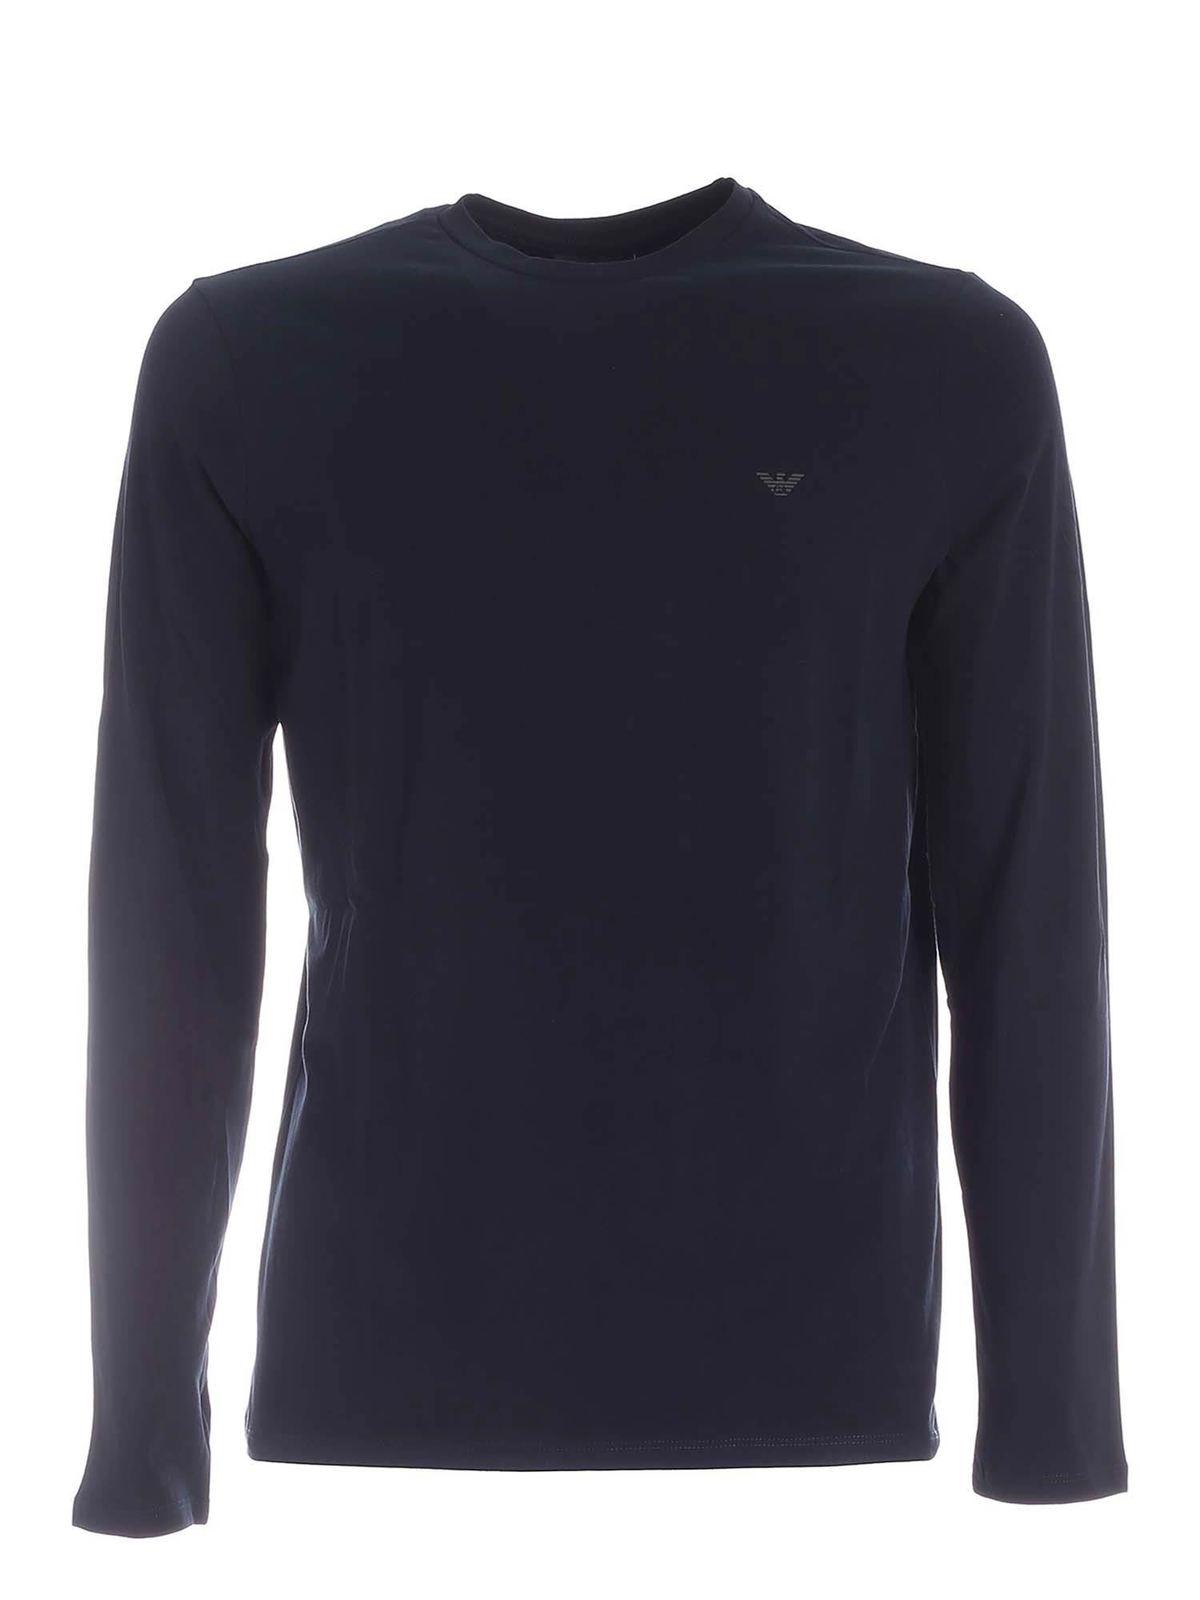 Emporio Armani BLUE LONG-SLEEVED T-SHIRT WITH LOGO